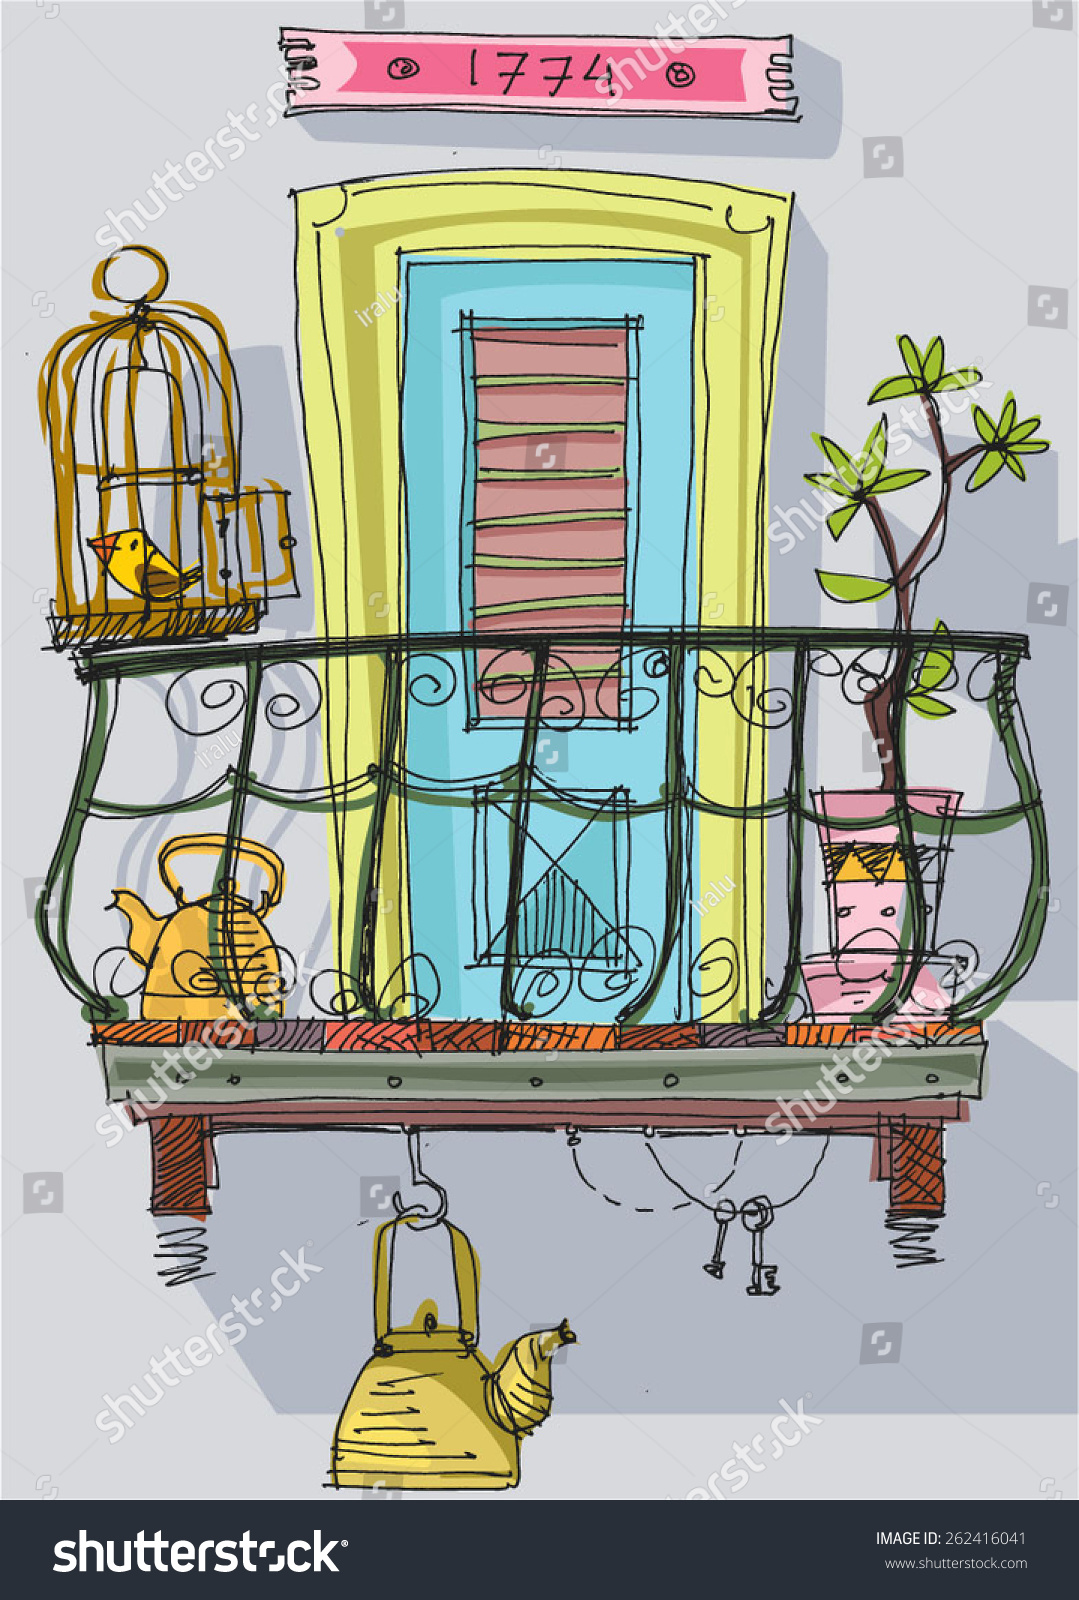 Cute balcony cartoon stock vector illustration 262416041 for Balcony clipart